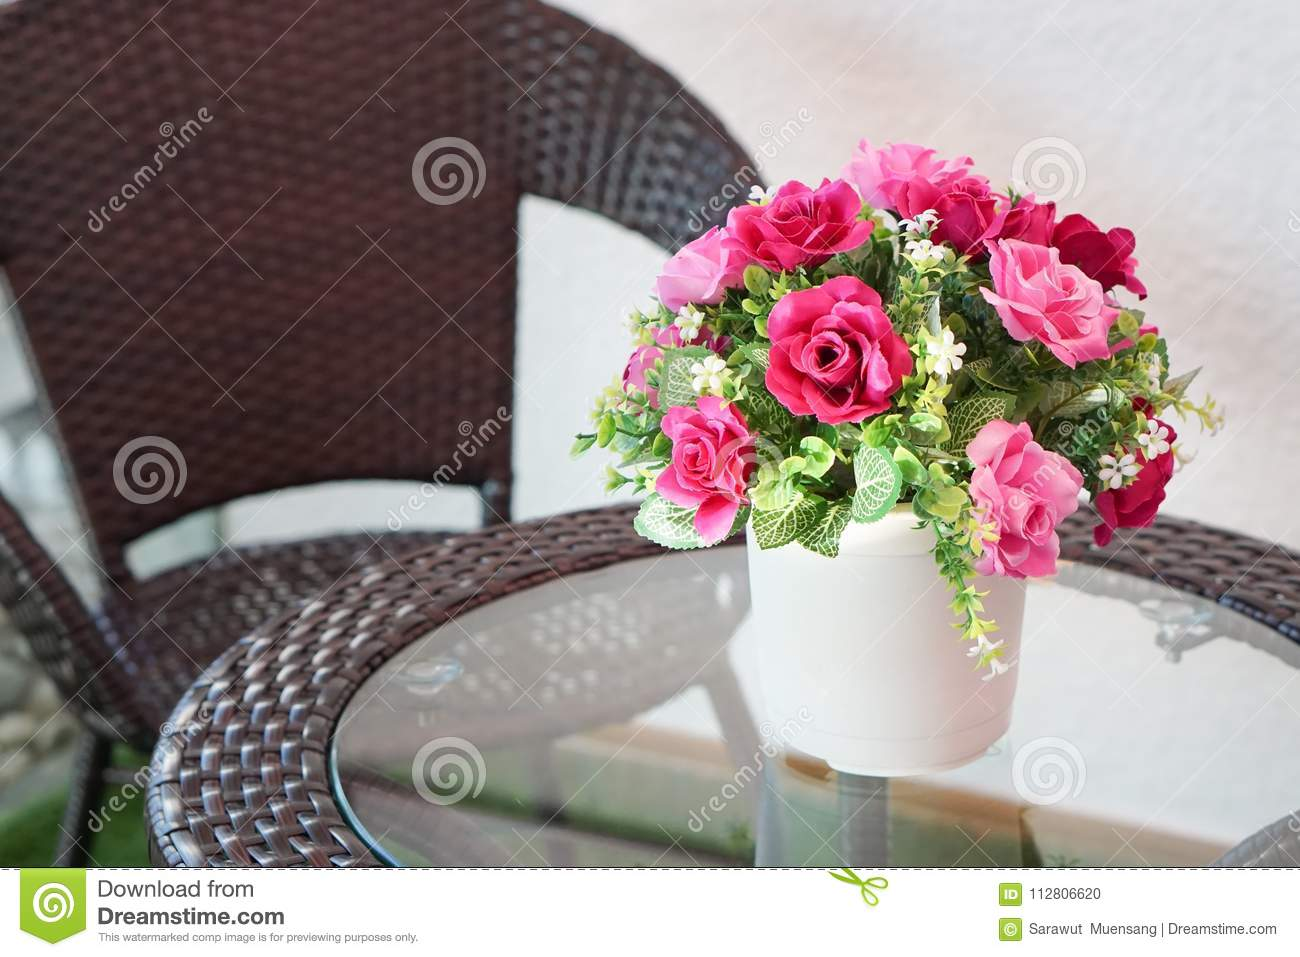 Fake flower and floral background rose flowers made of fabric the fake flower and floral background rose flowers made of fabric the fabric flowers bouquet colorful of decoration artificial flower izmirmasajfo